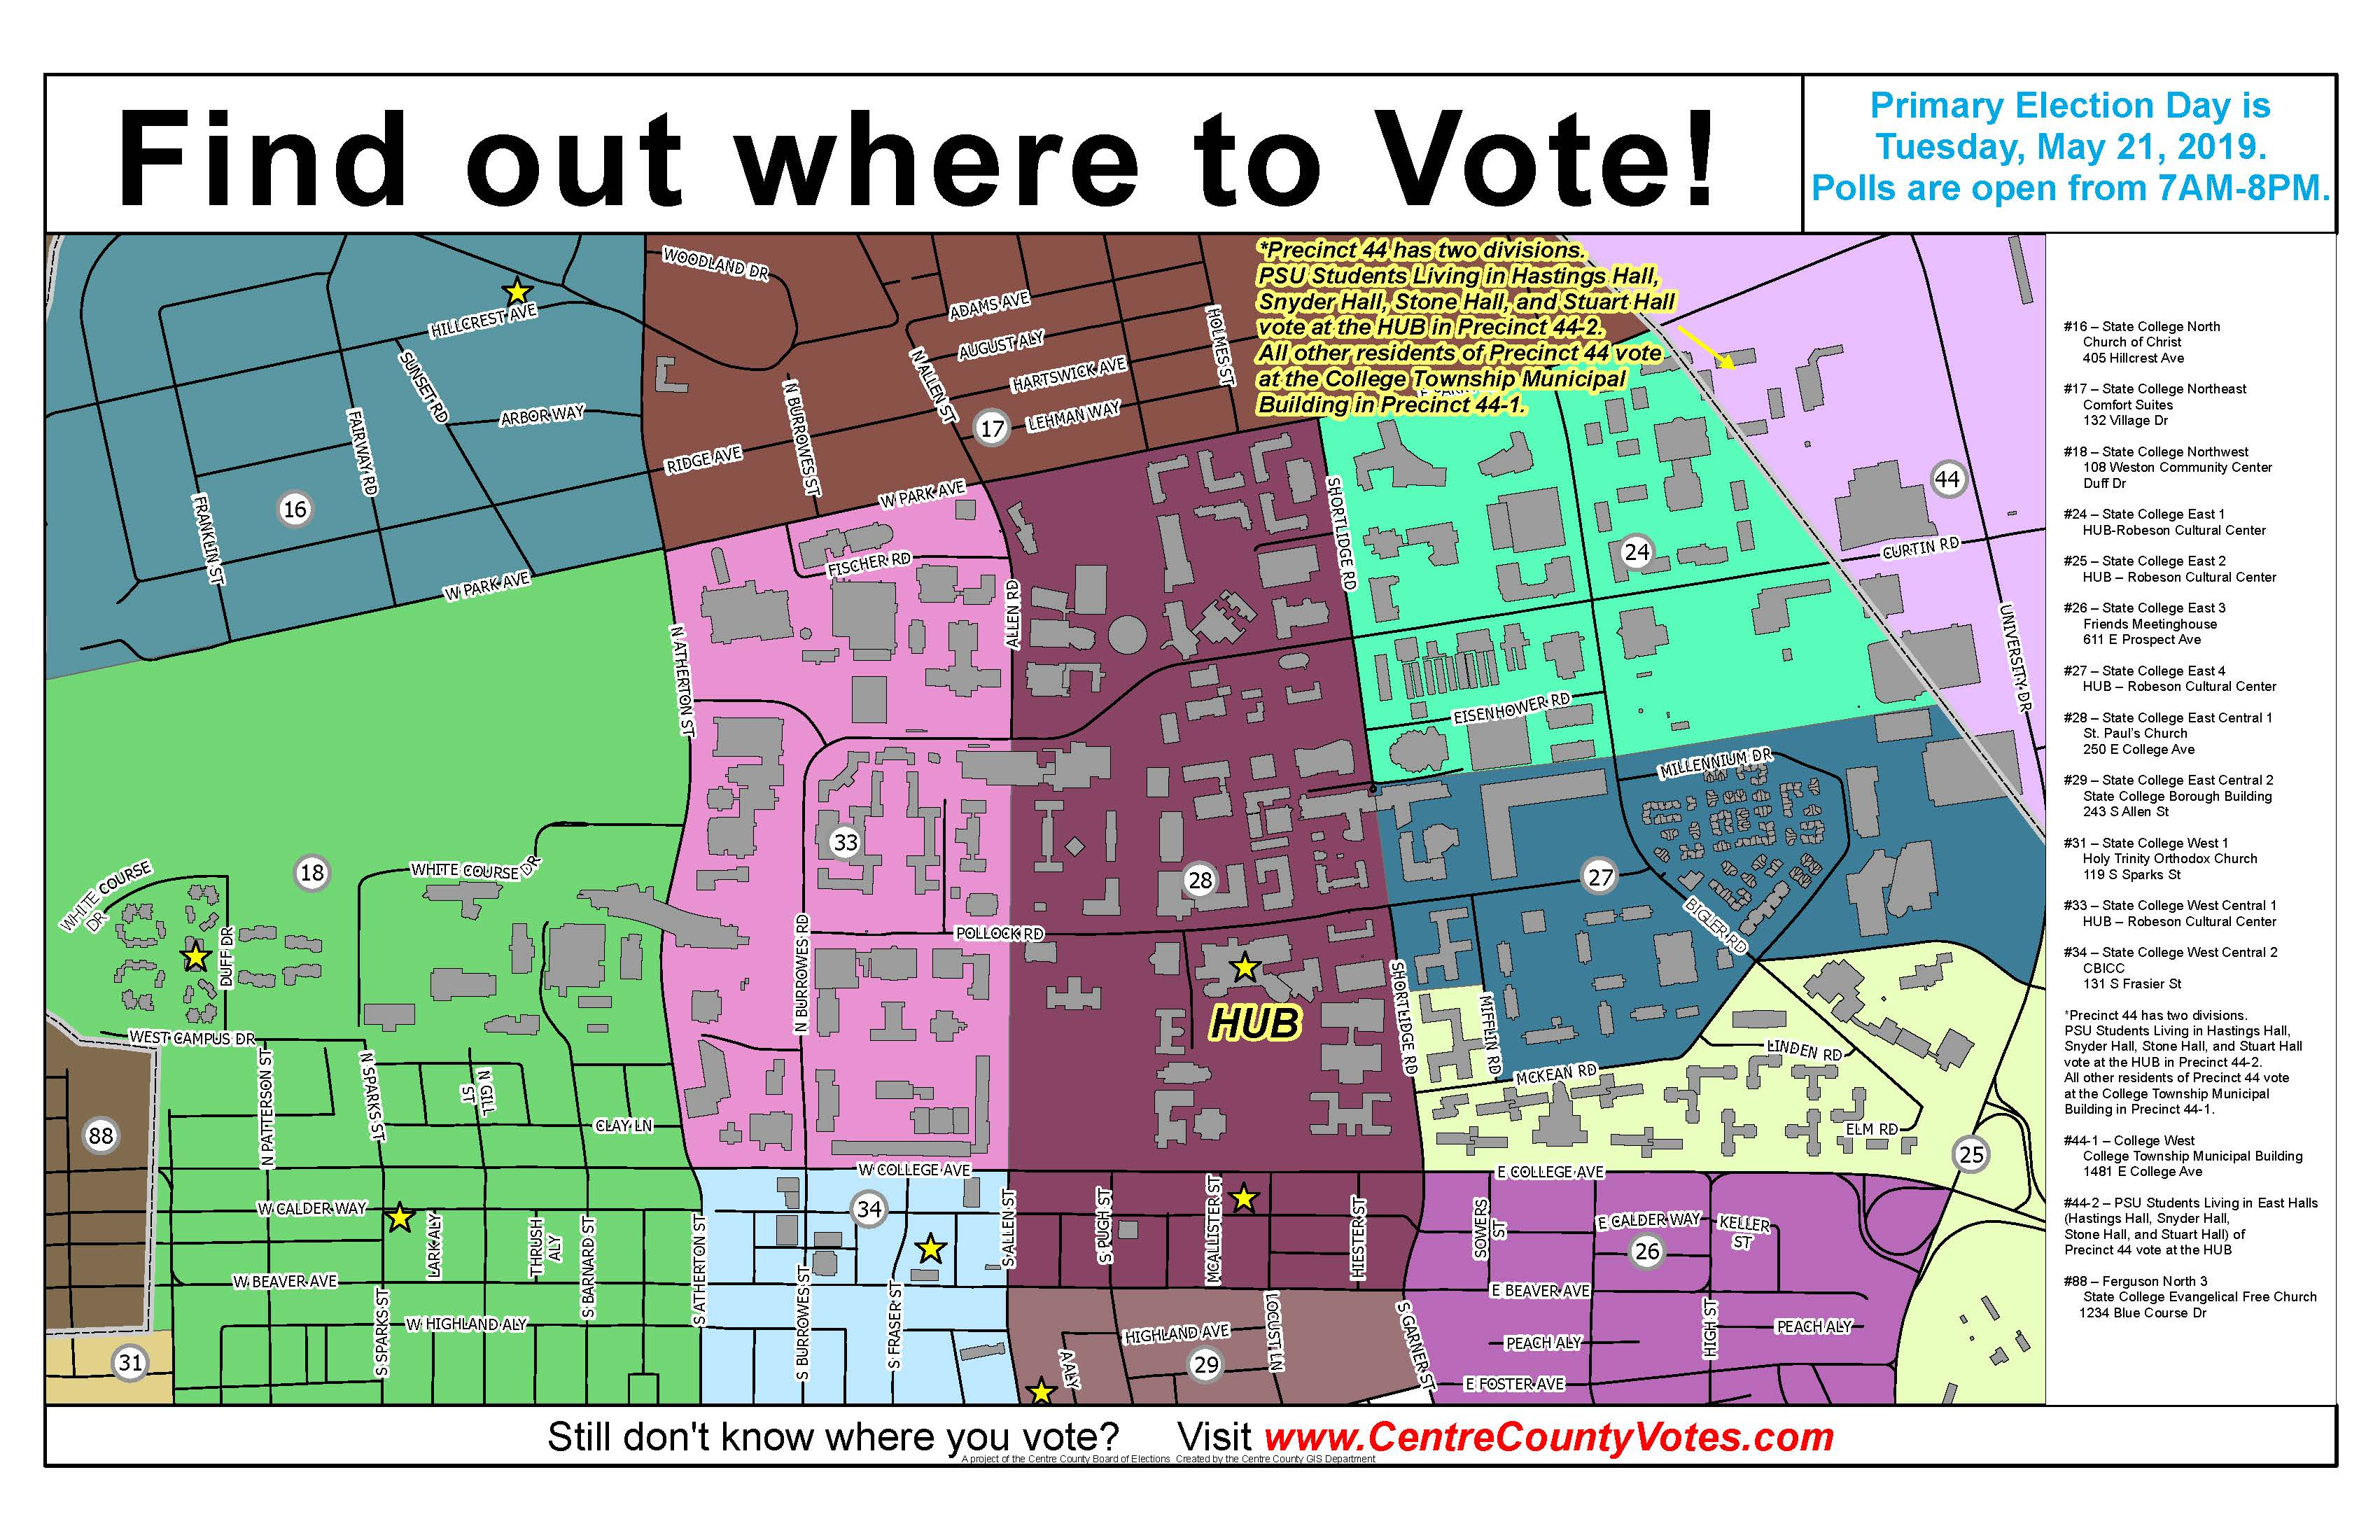 Centre County Pa Official Website Elections Voter Registration - Google-us-election-map